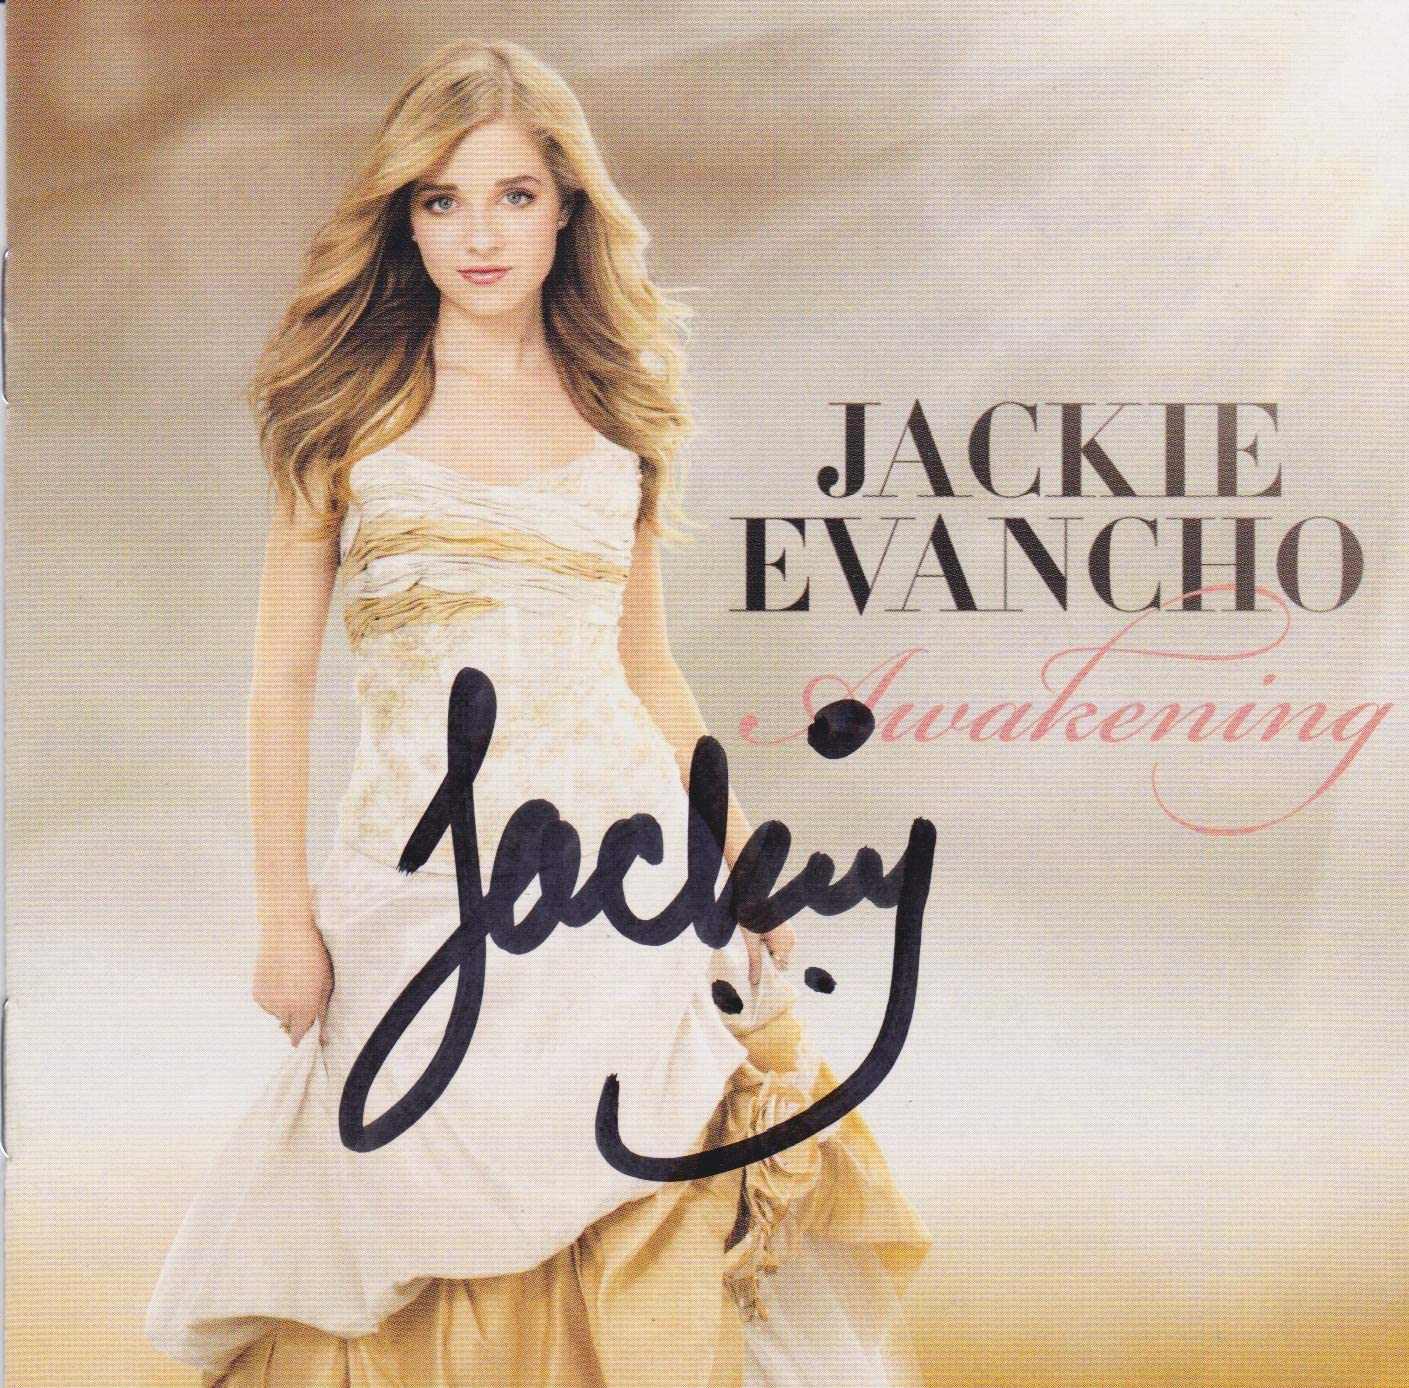 Jackie Evancho OFFicial mail order signed CD shop